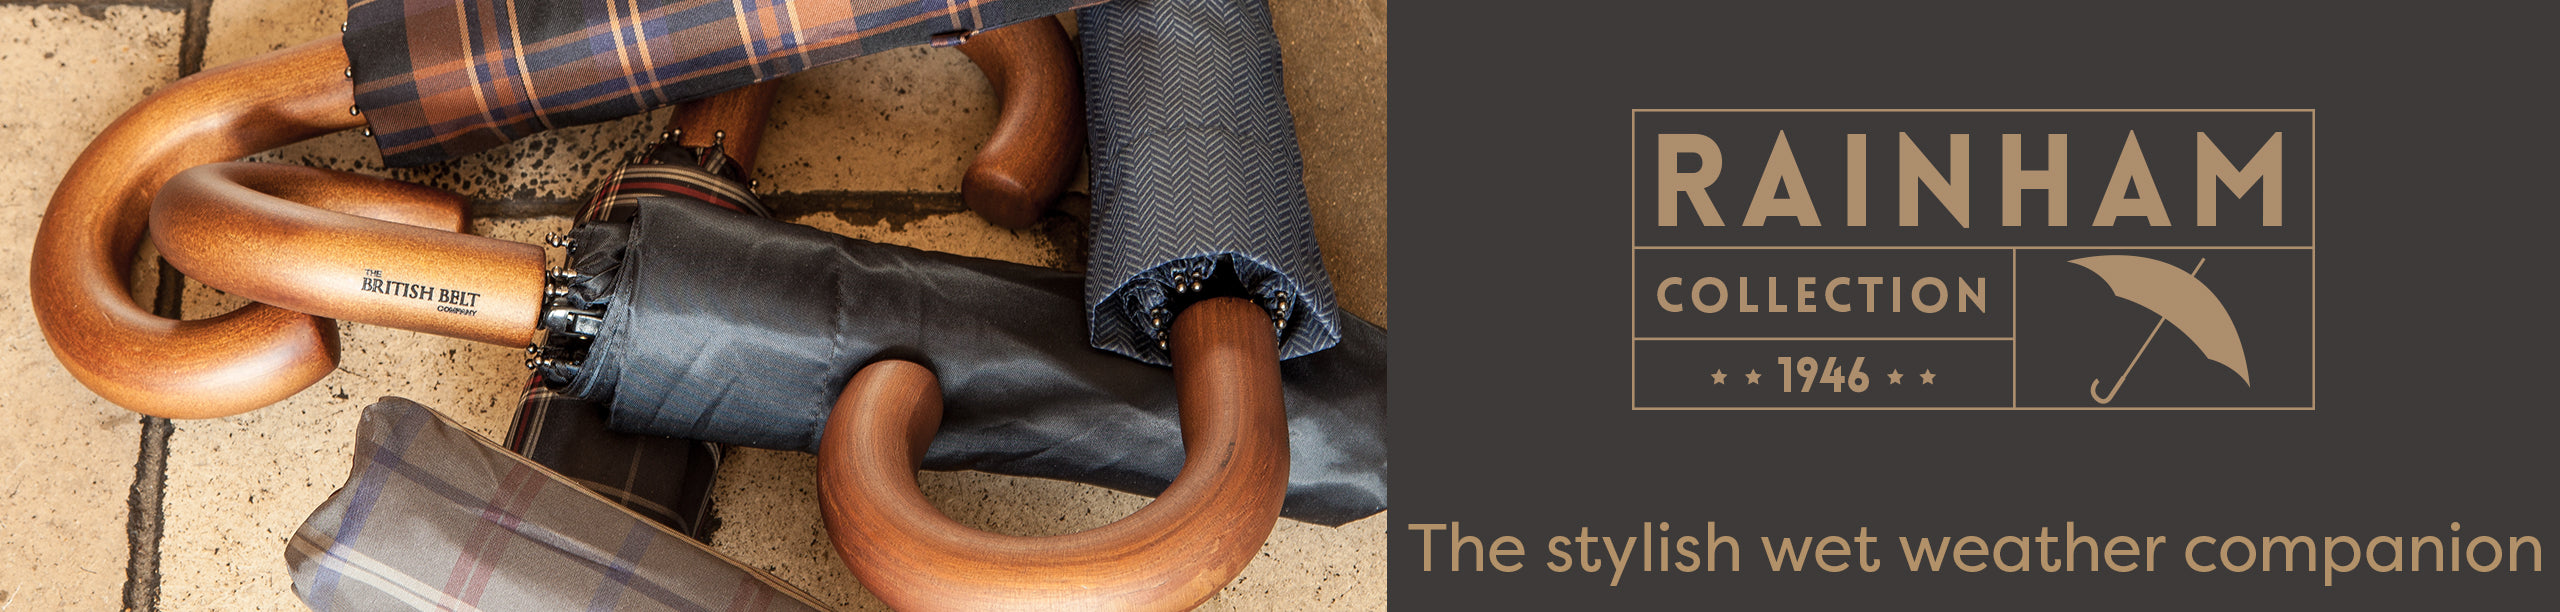 The British Belt Company Rainham umbrella long handle and short handle collection, ideal for those rainy days.